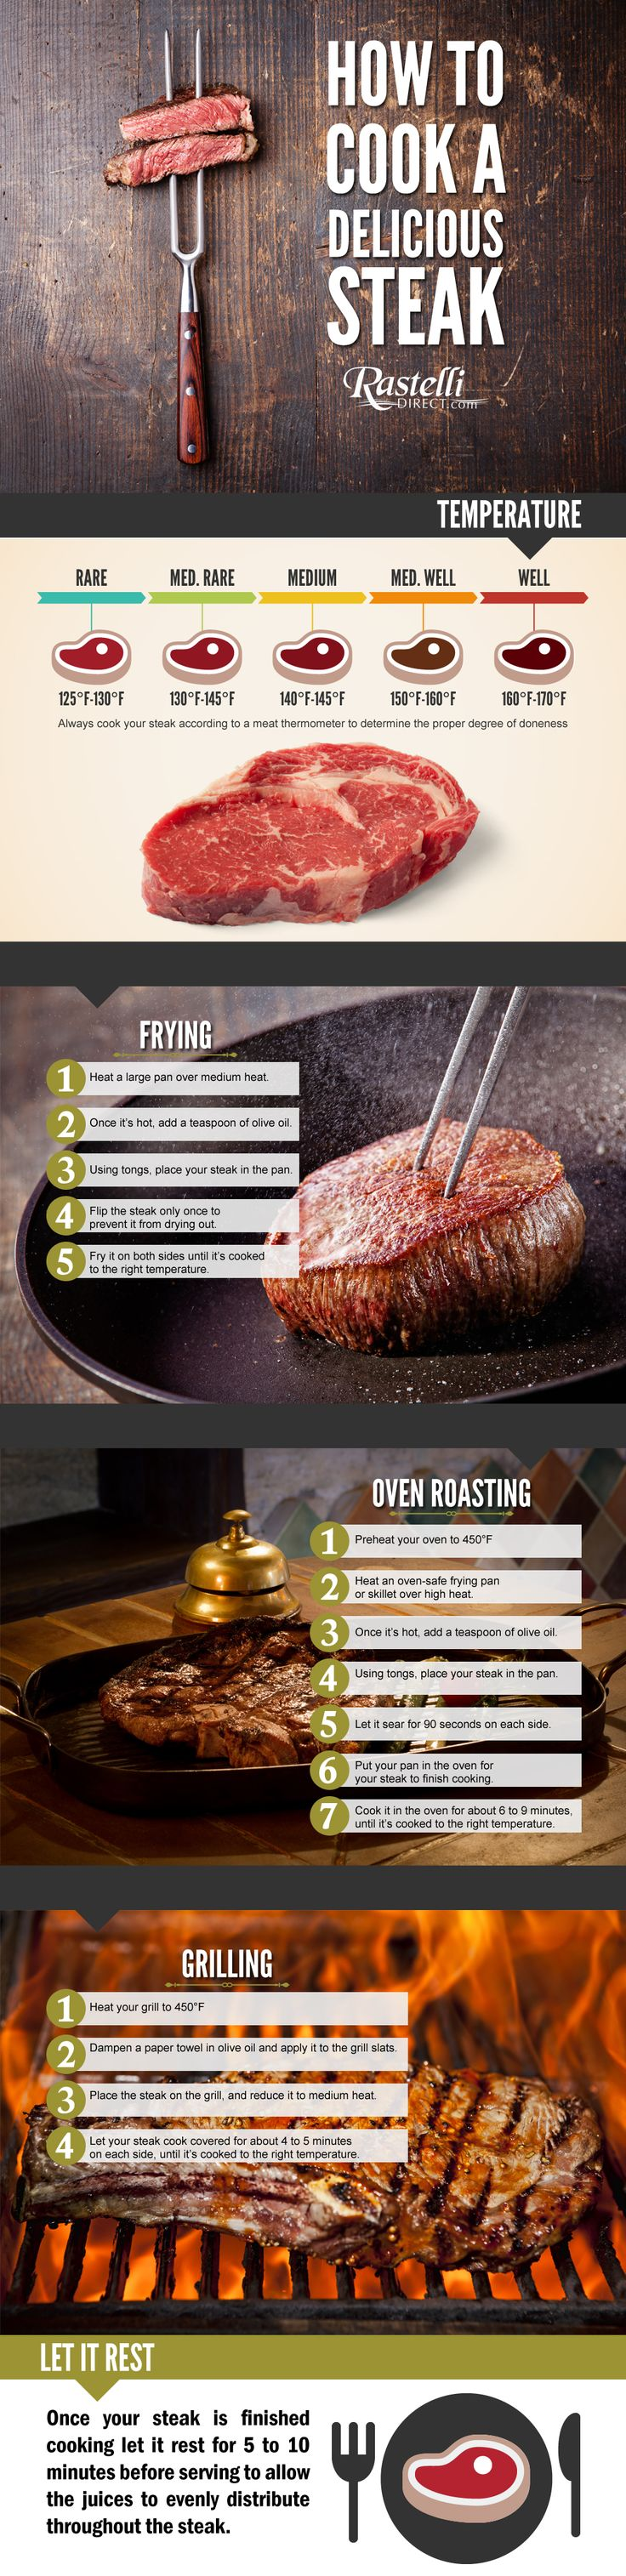 How to cook the perfect steak...Grilled Steak, Oven Roasted Steak or Pan Seared Steak